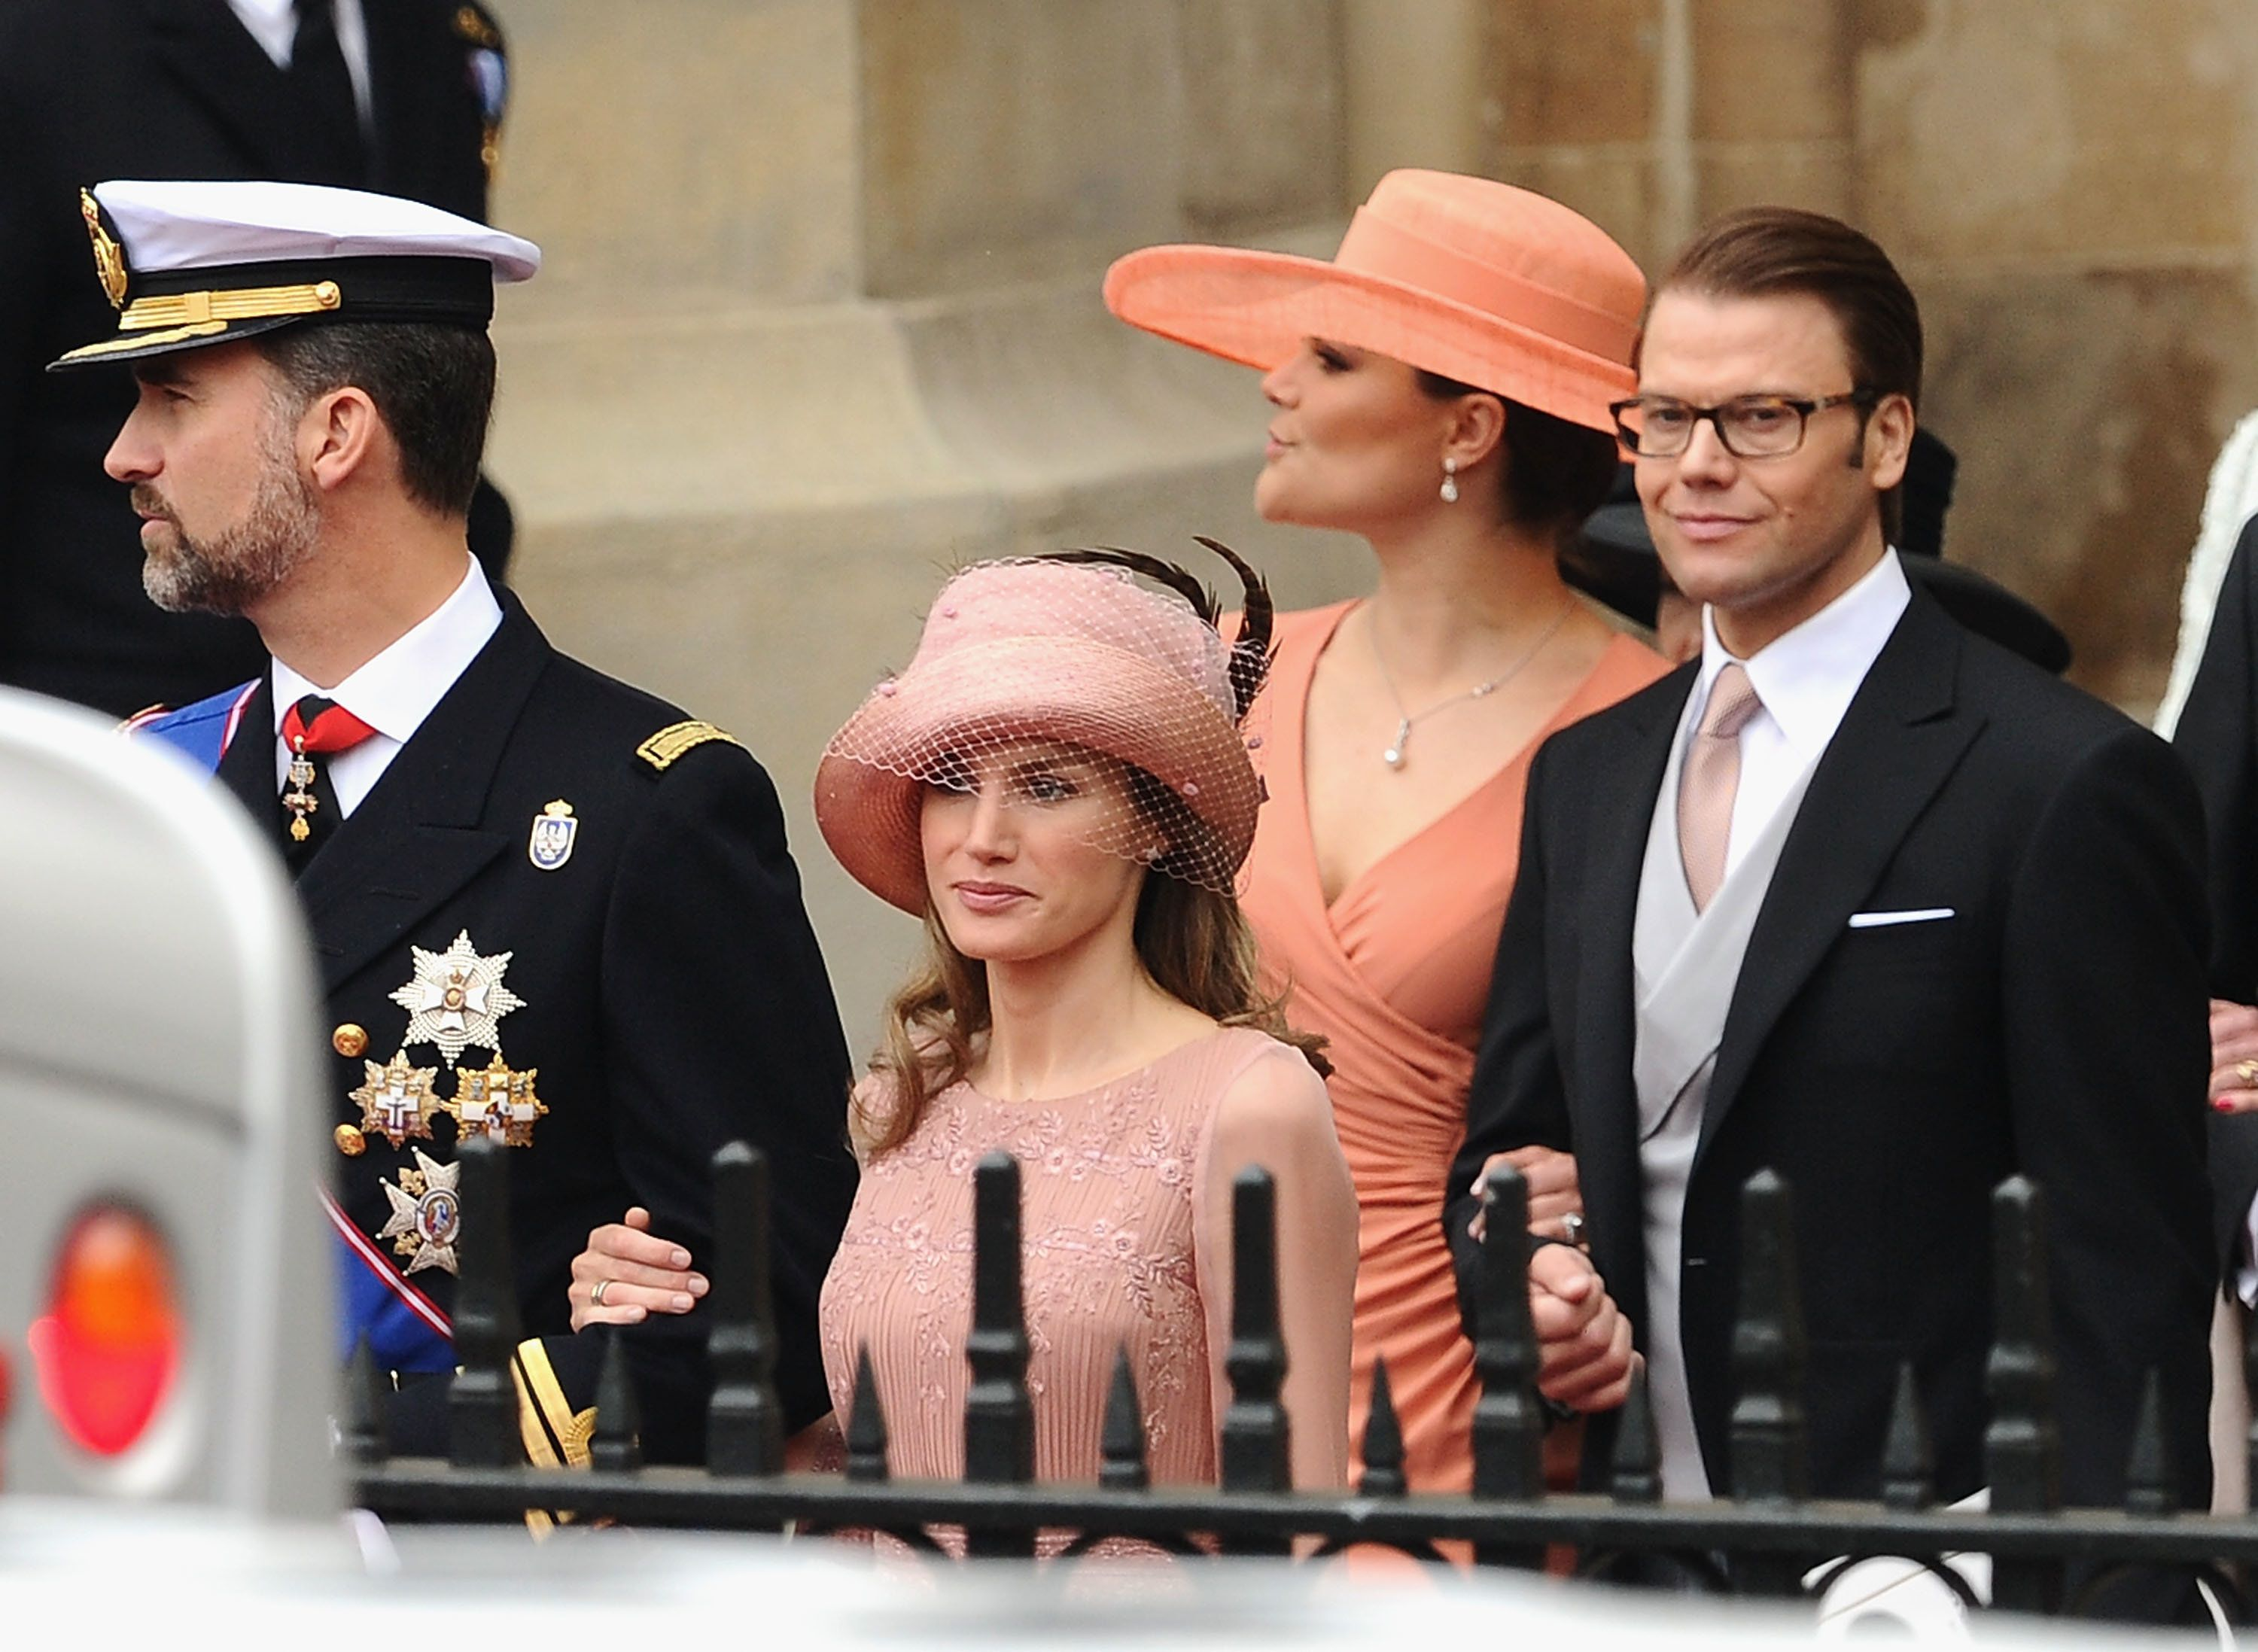 Then-Prince Felipe and then-Princess Letizia of Spain (now the king and queen) and Crown Princess Victoria and Prince Daniel